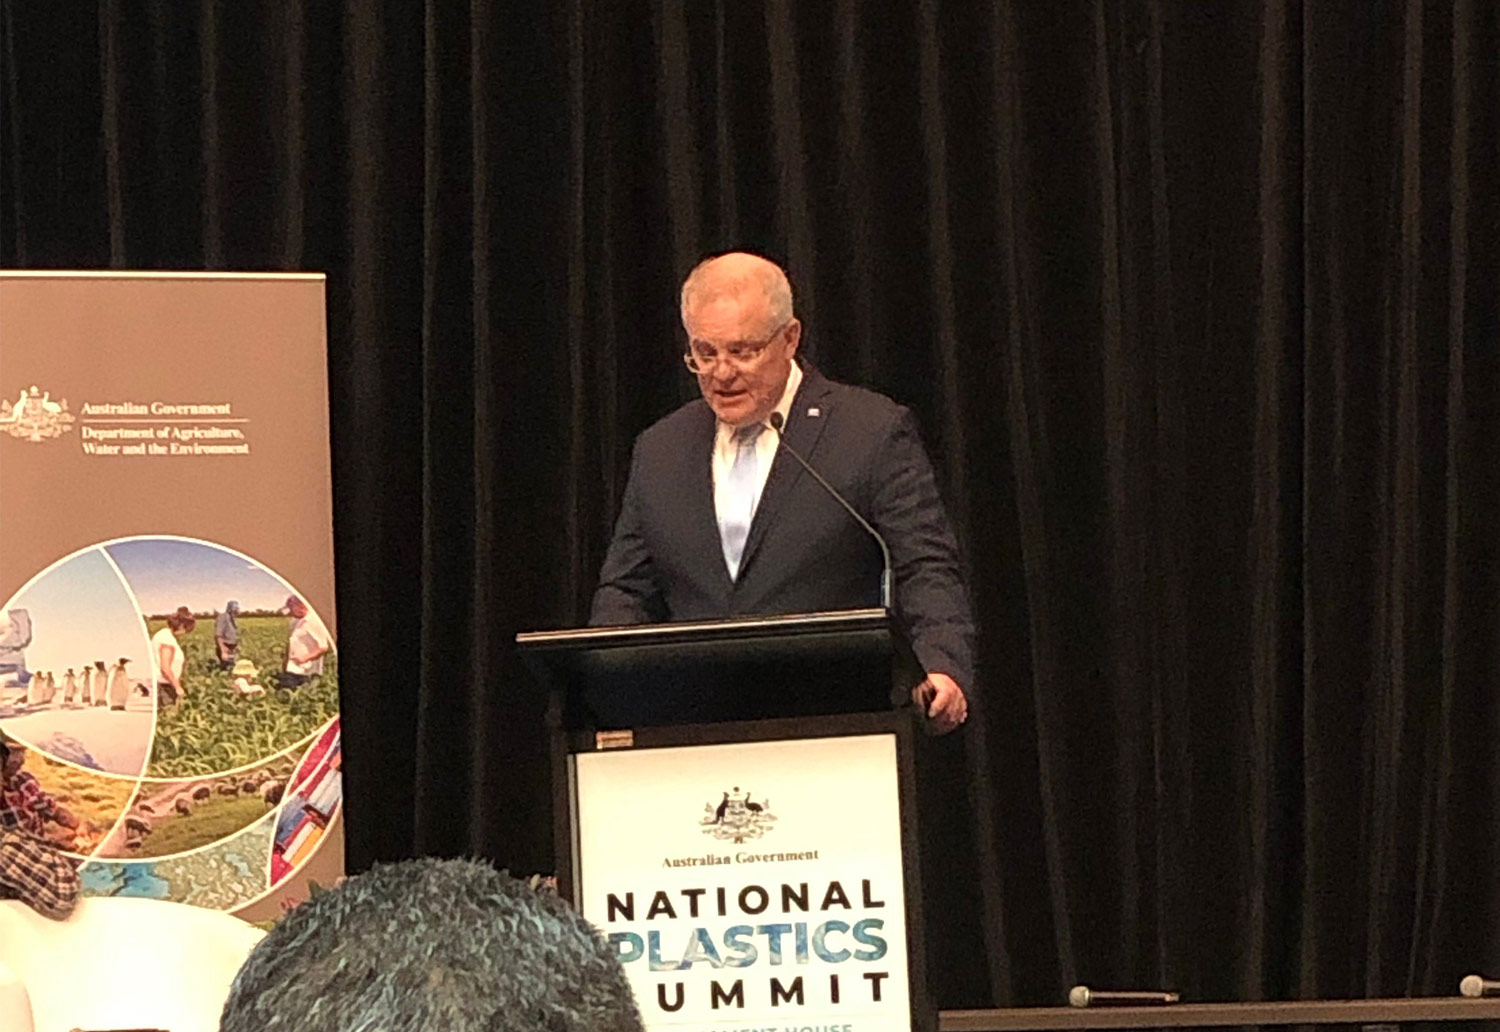 Prime Minister Scott Morrison presents at the National Plastics Summit